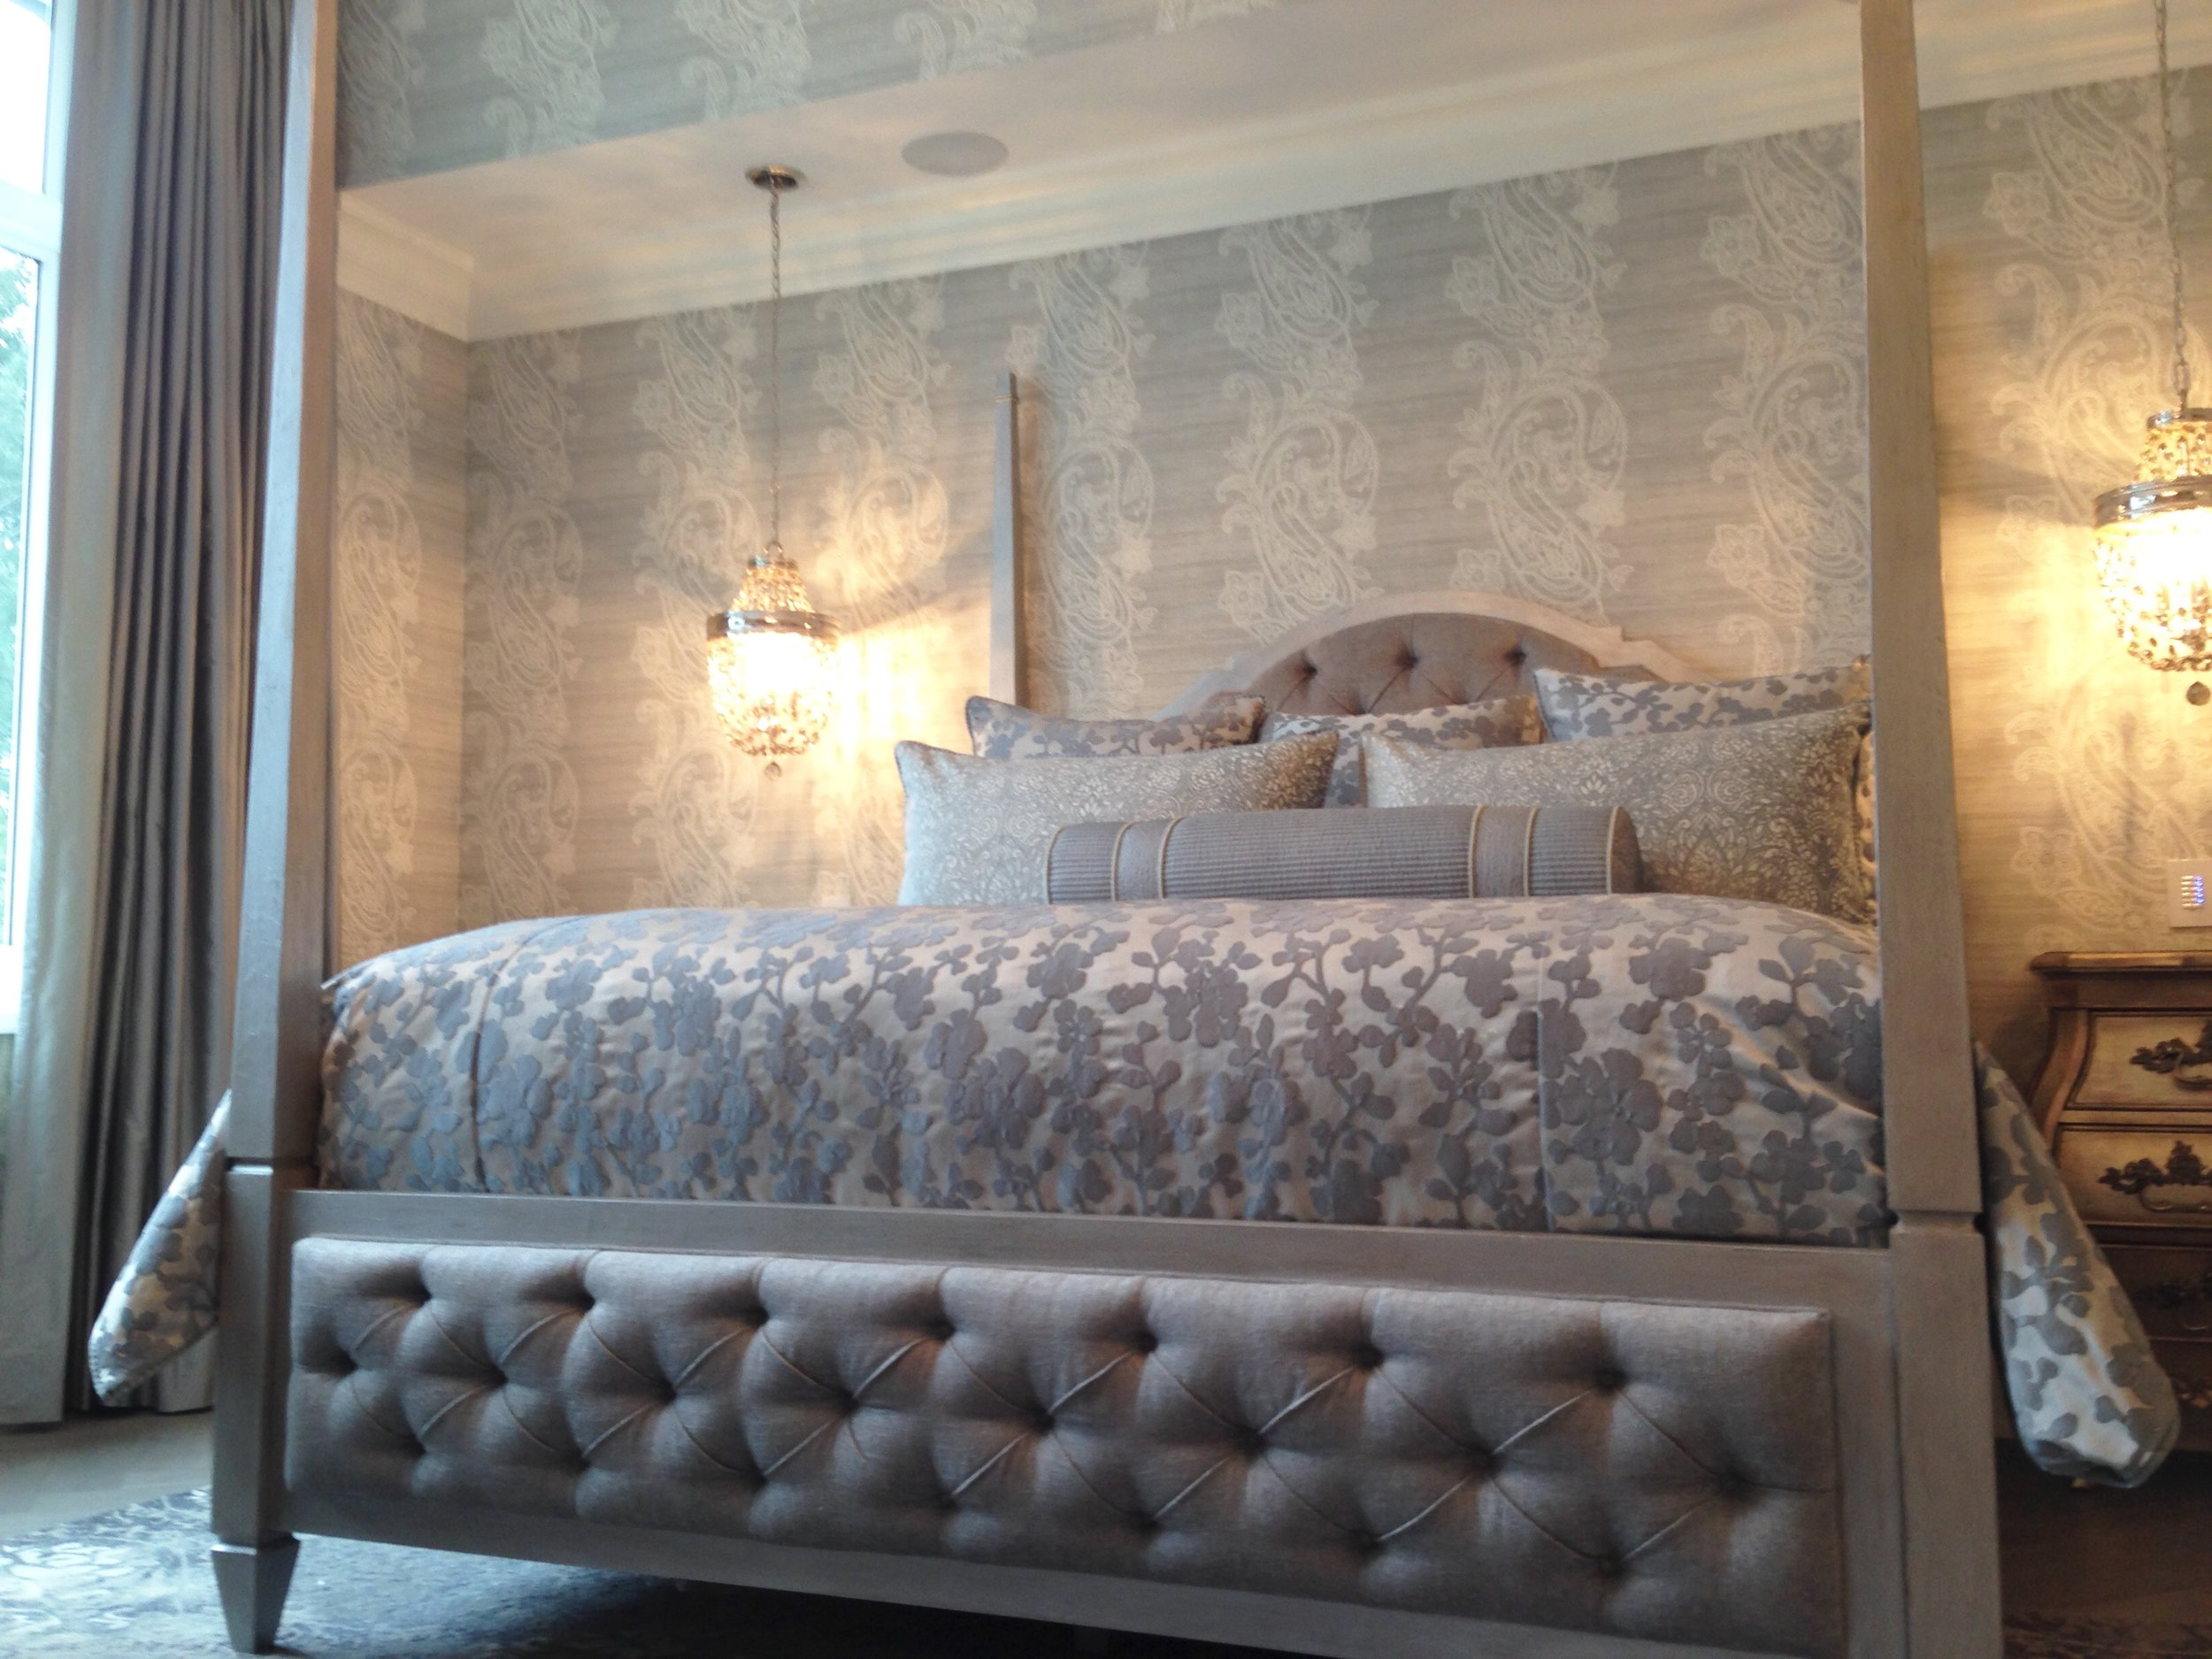 Silk Drapes, custom bedding, toss pillows and bed Upholstery